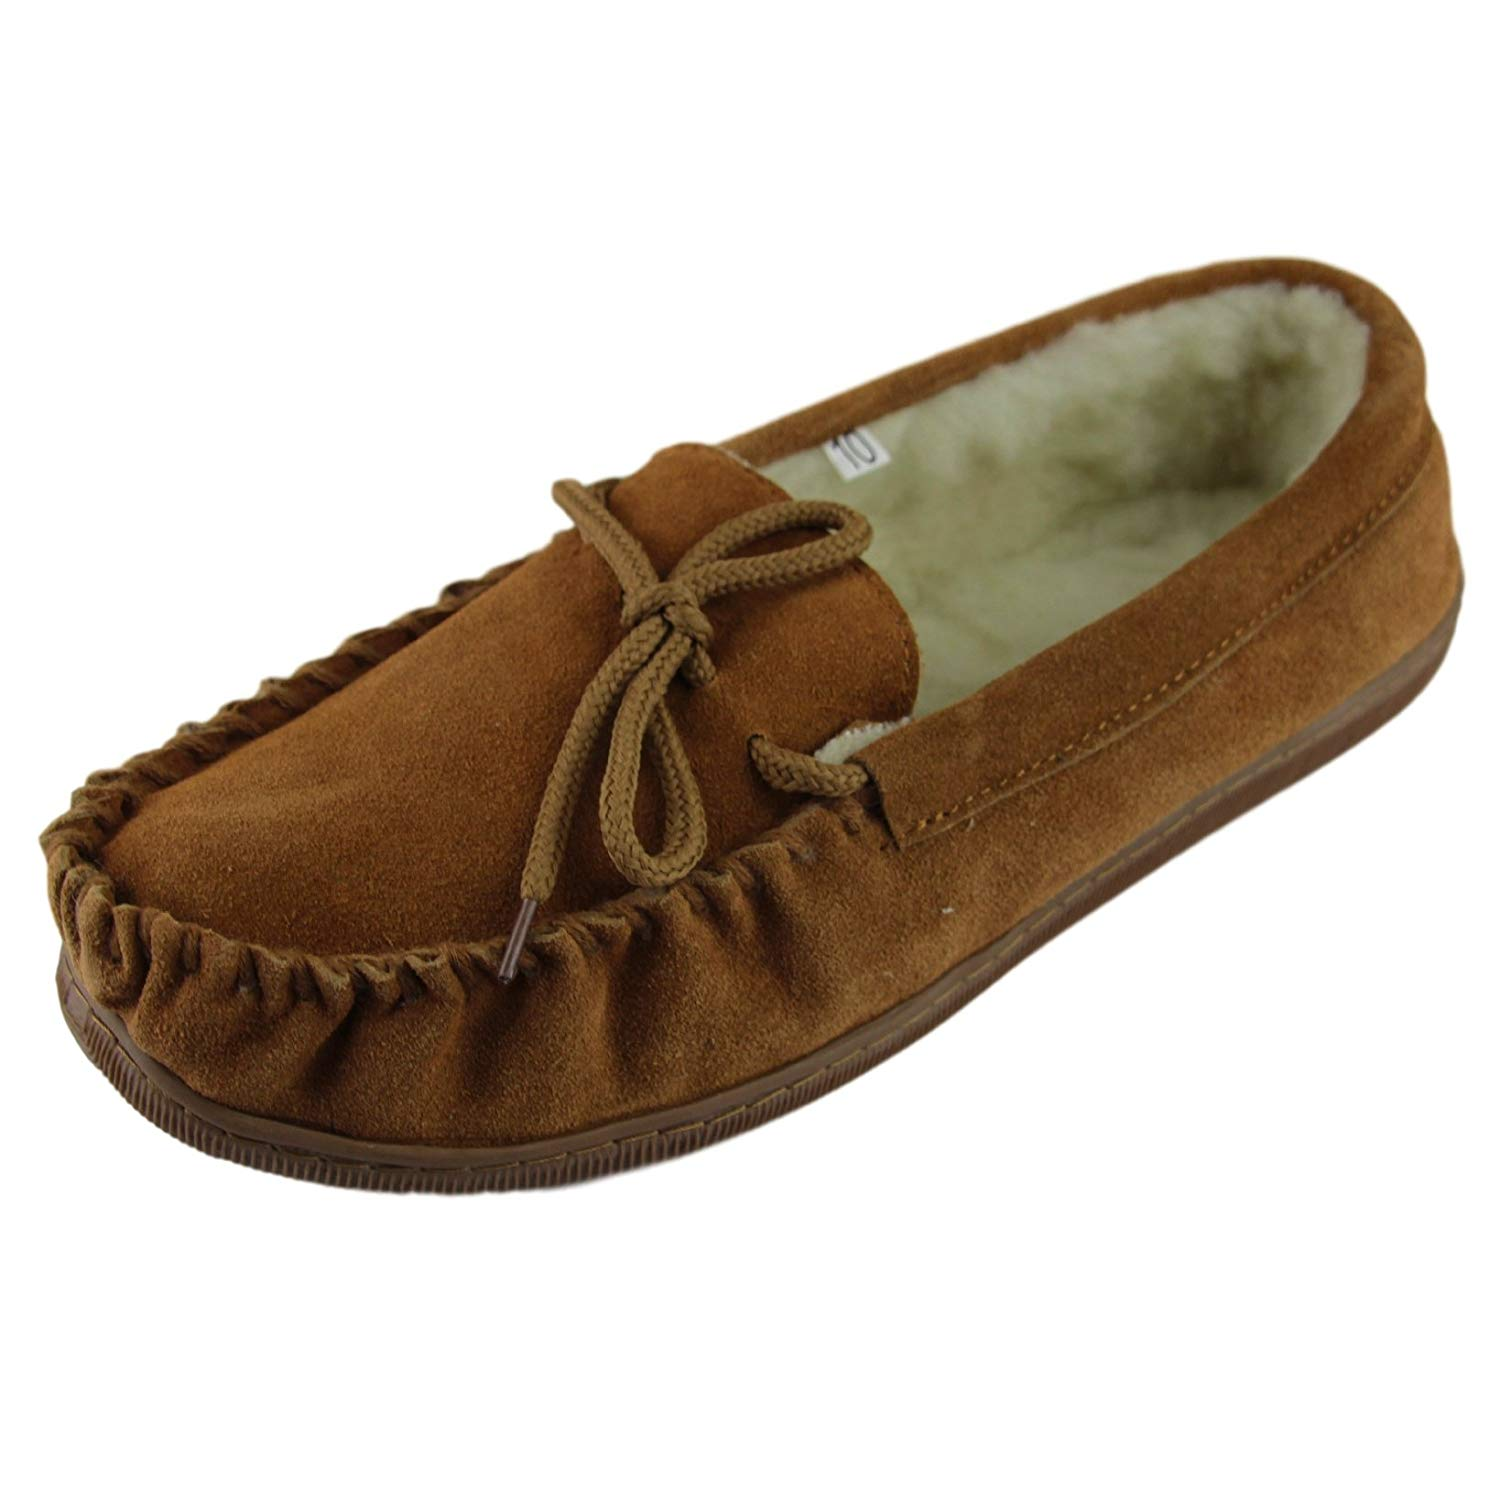 78233805aa9 Sheepskin World Deluxe Mens Lambswool Moccasin Slippers with Extra Thick Hard  Sole - Suede Upper